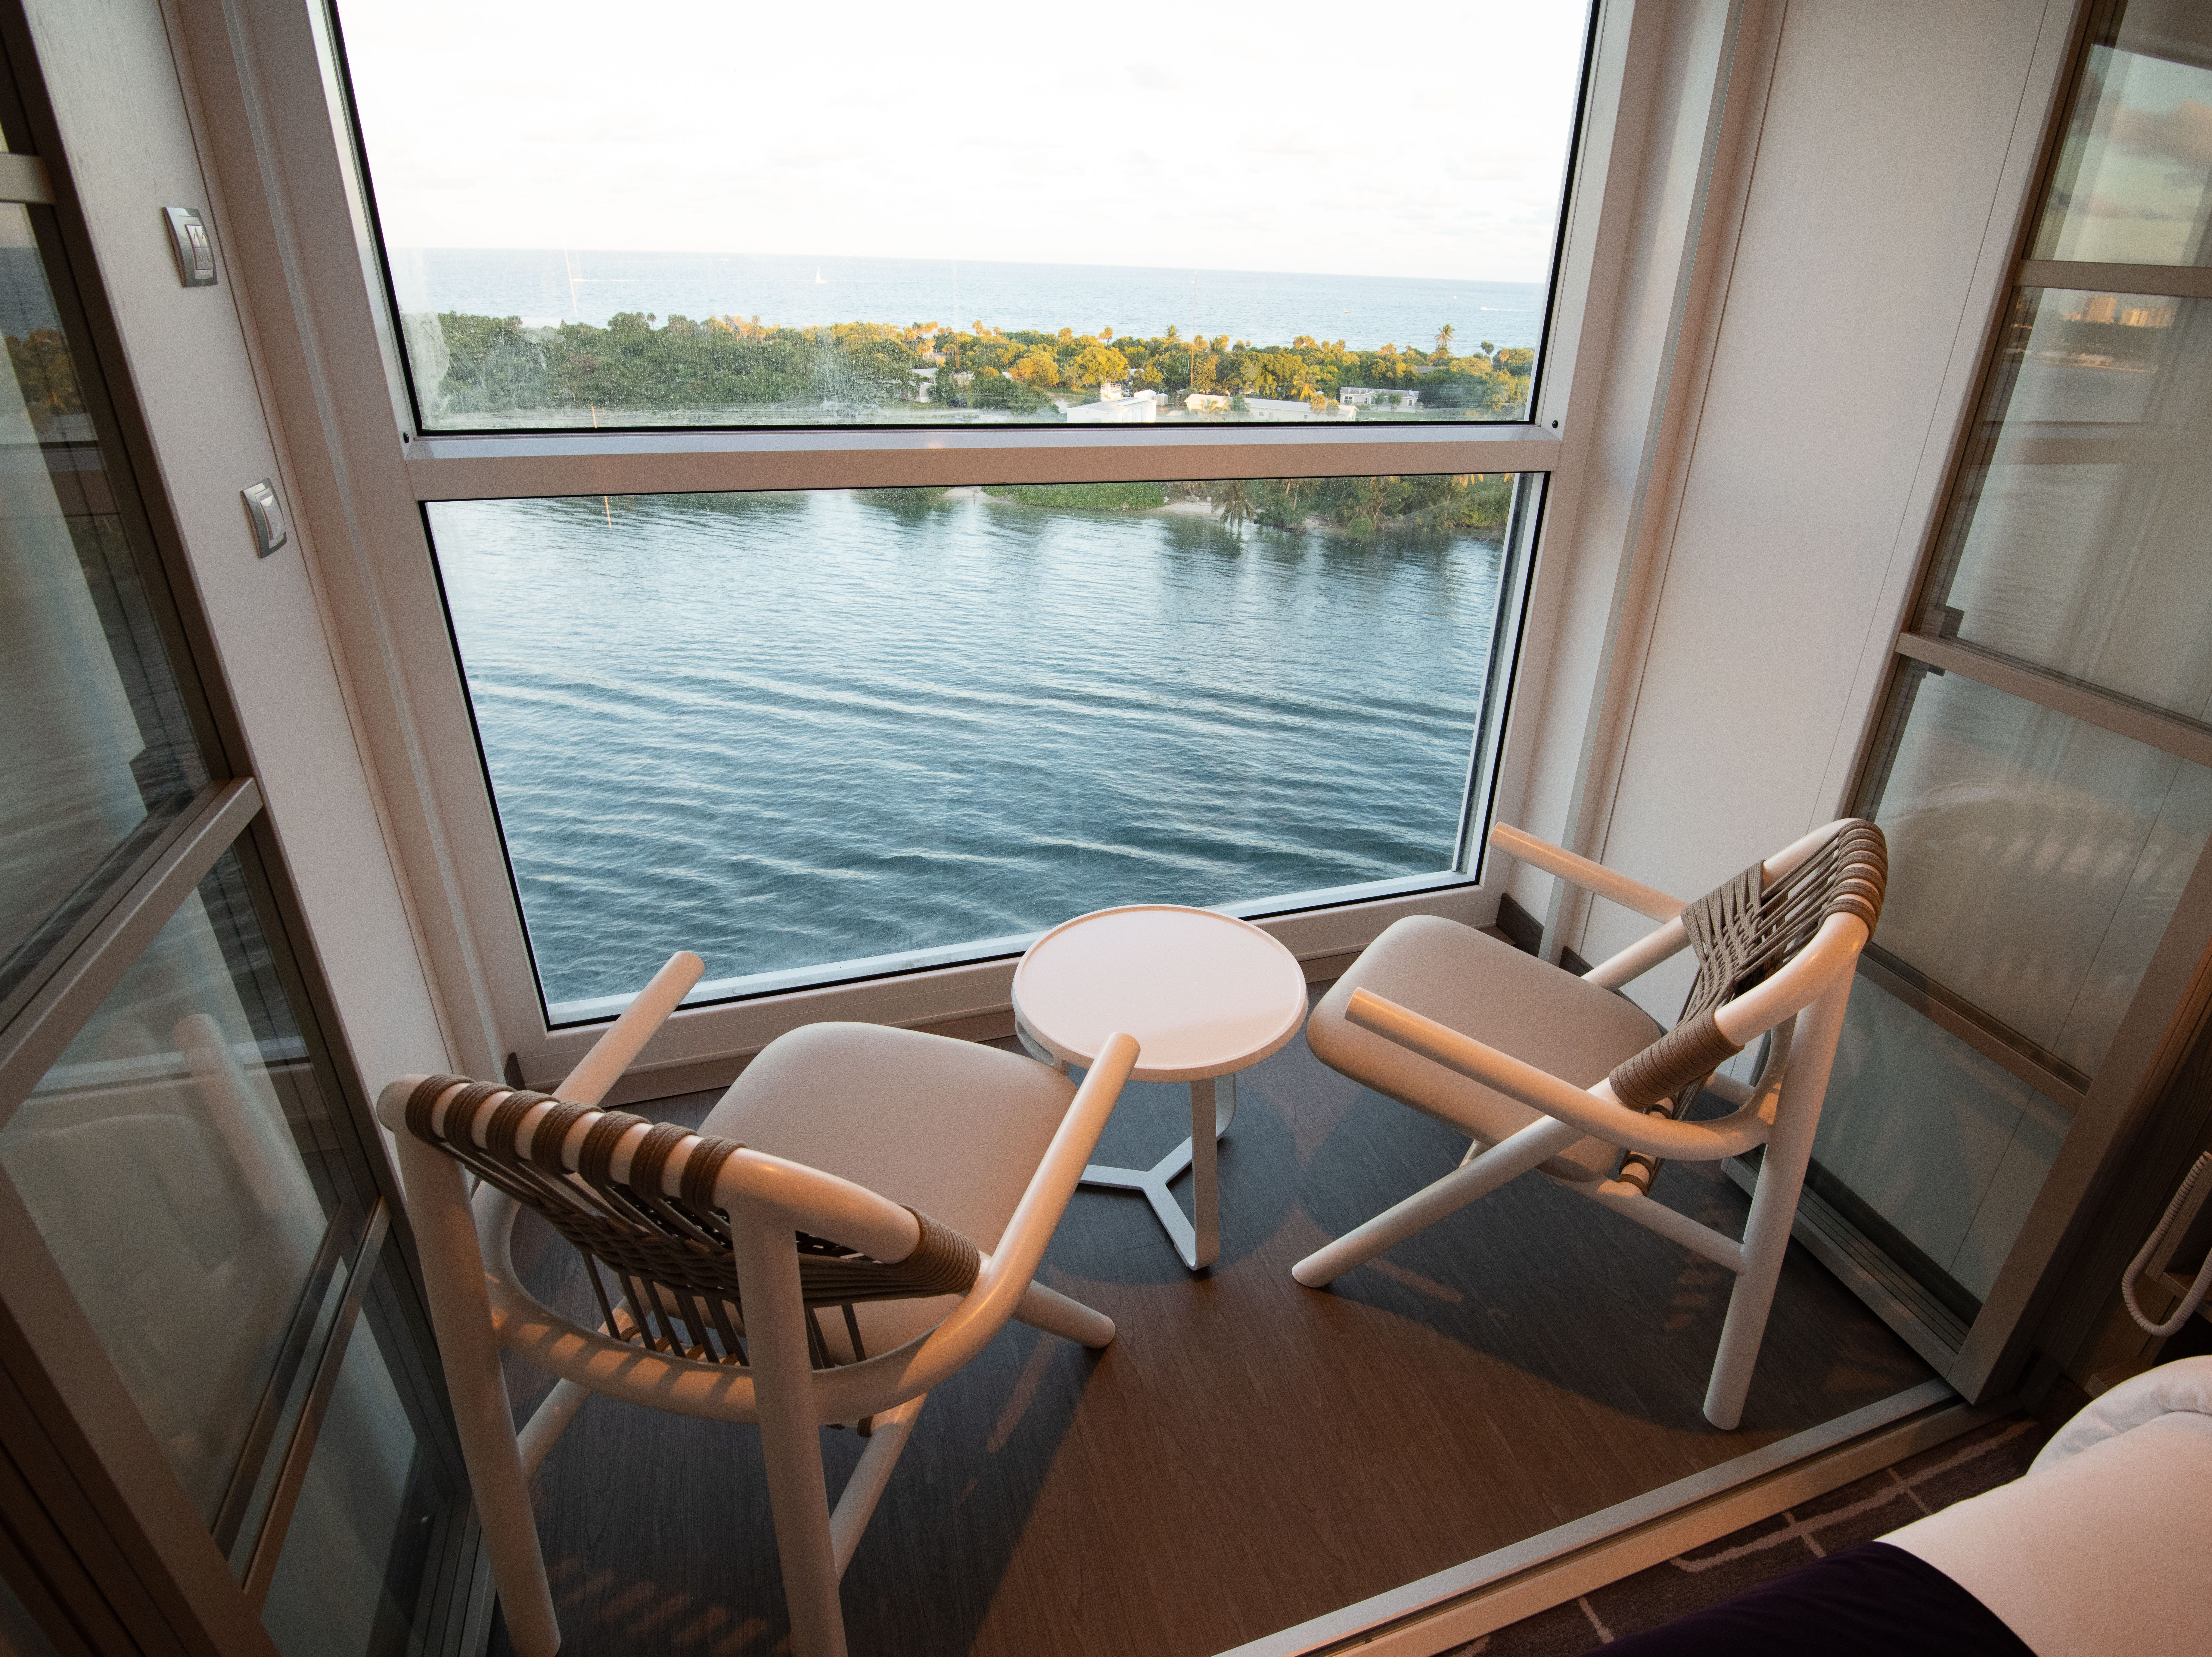 In a first for an ocean cruise ship, the Edge Stateroom with Infinite Veranda cabins have balconies that are incorporated into the main cabin area.